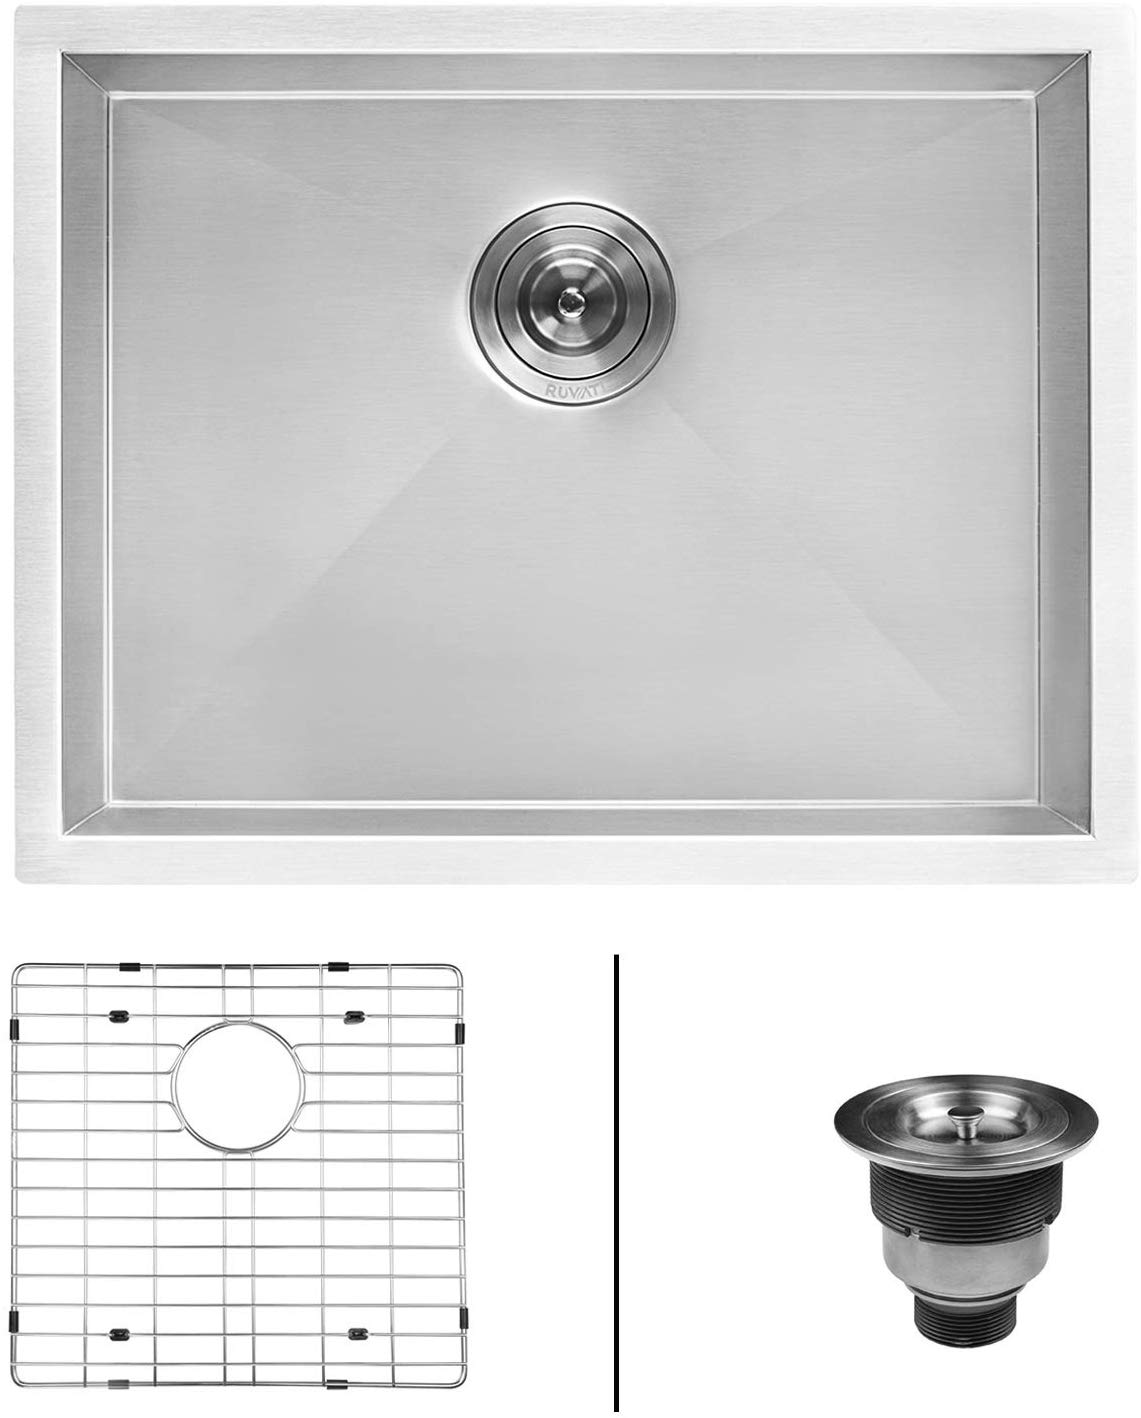 Ruvati 23in x 18in x 12in Deep Laundry Utility Sink Undermount 16 Gauge Stainless Steel - RVU6100